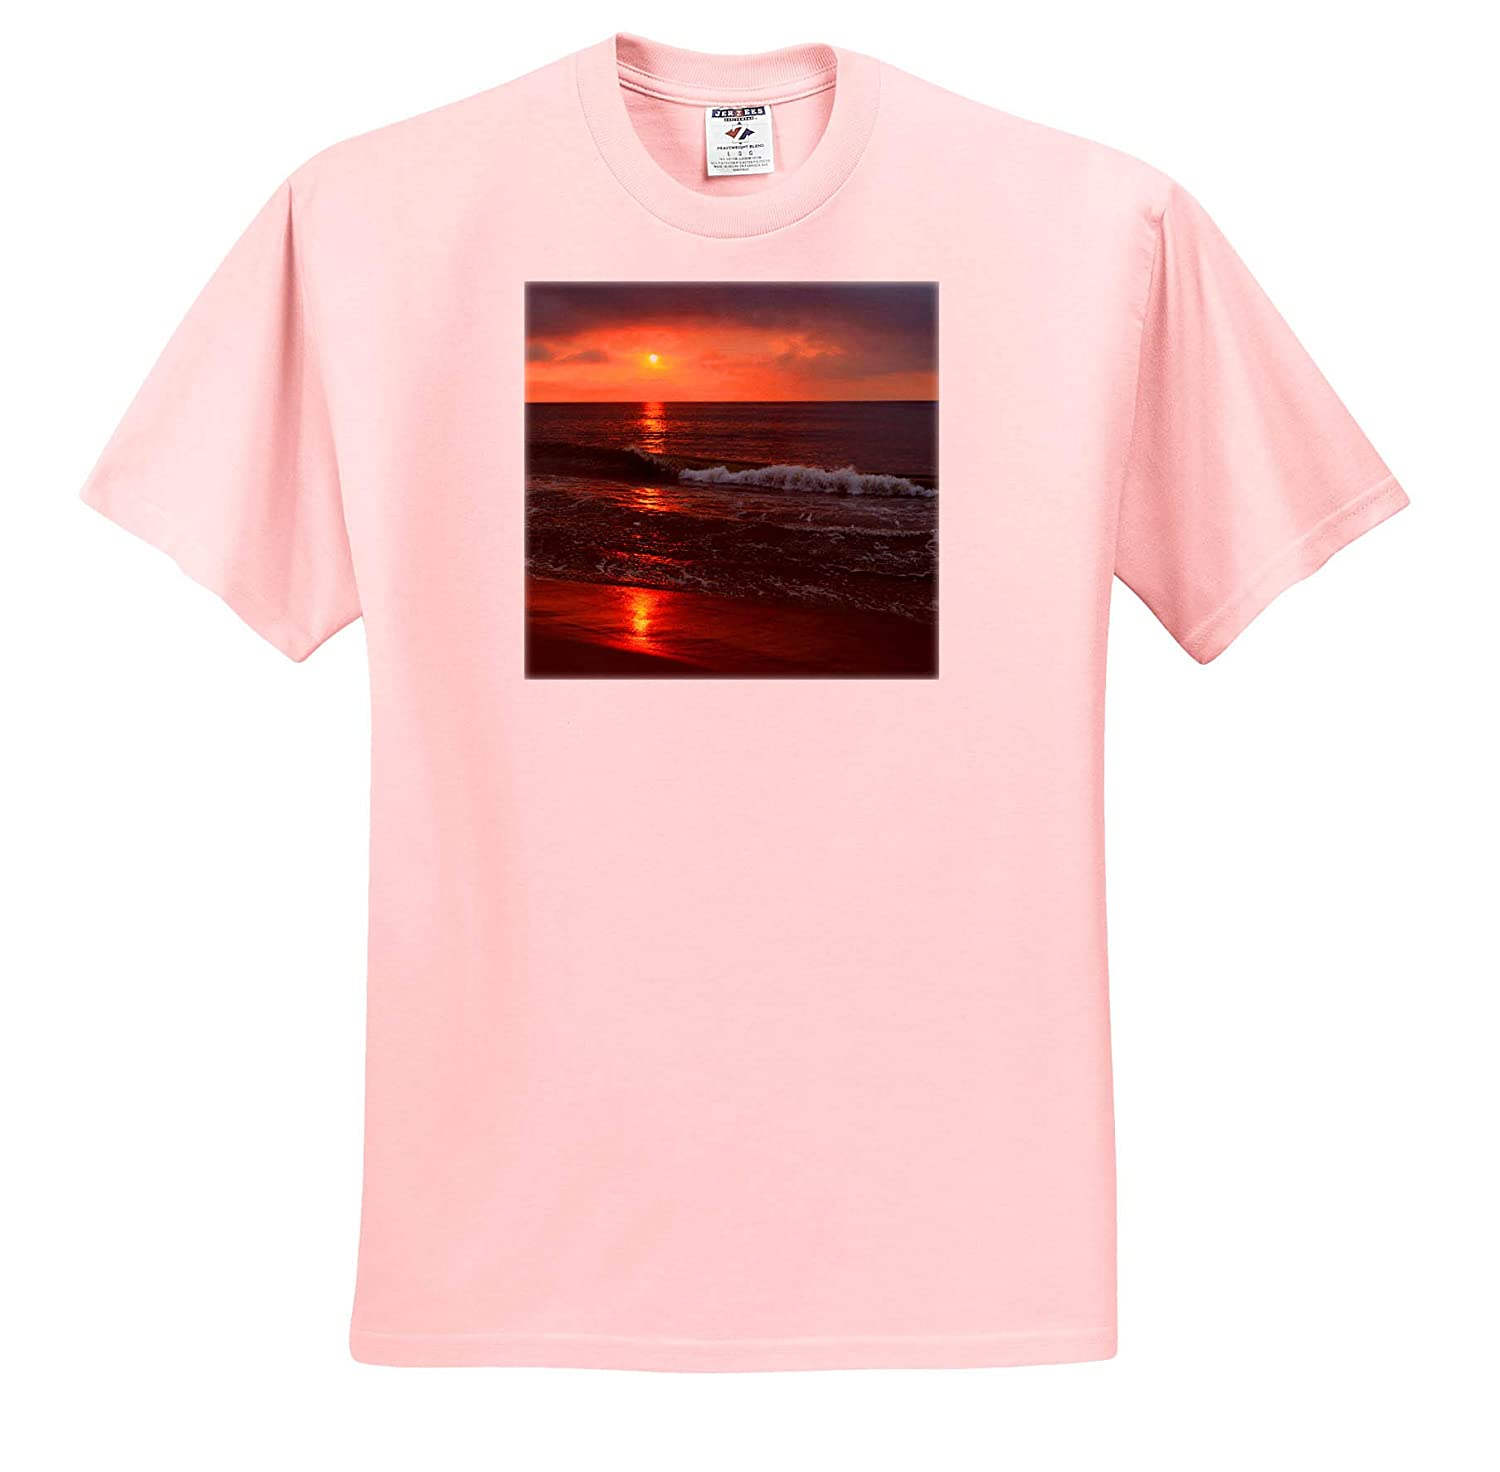 Serene Ocean Sunset Reflection Image of Ocean Sunset Reflection with Reds and Oranges 3dRose Photos by Sara T-Shirts